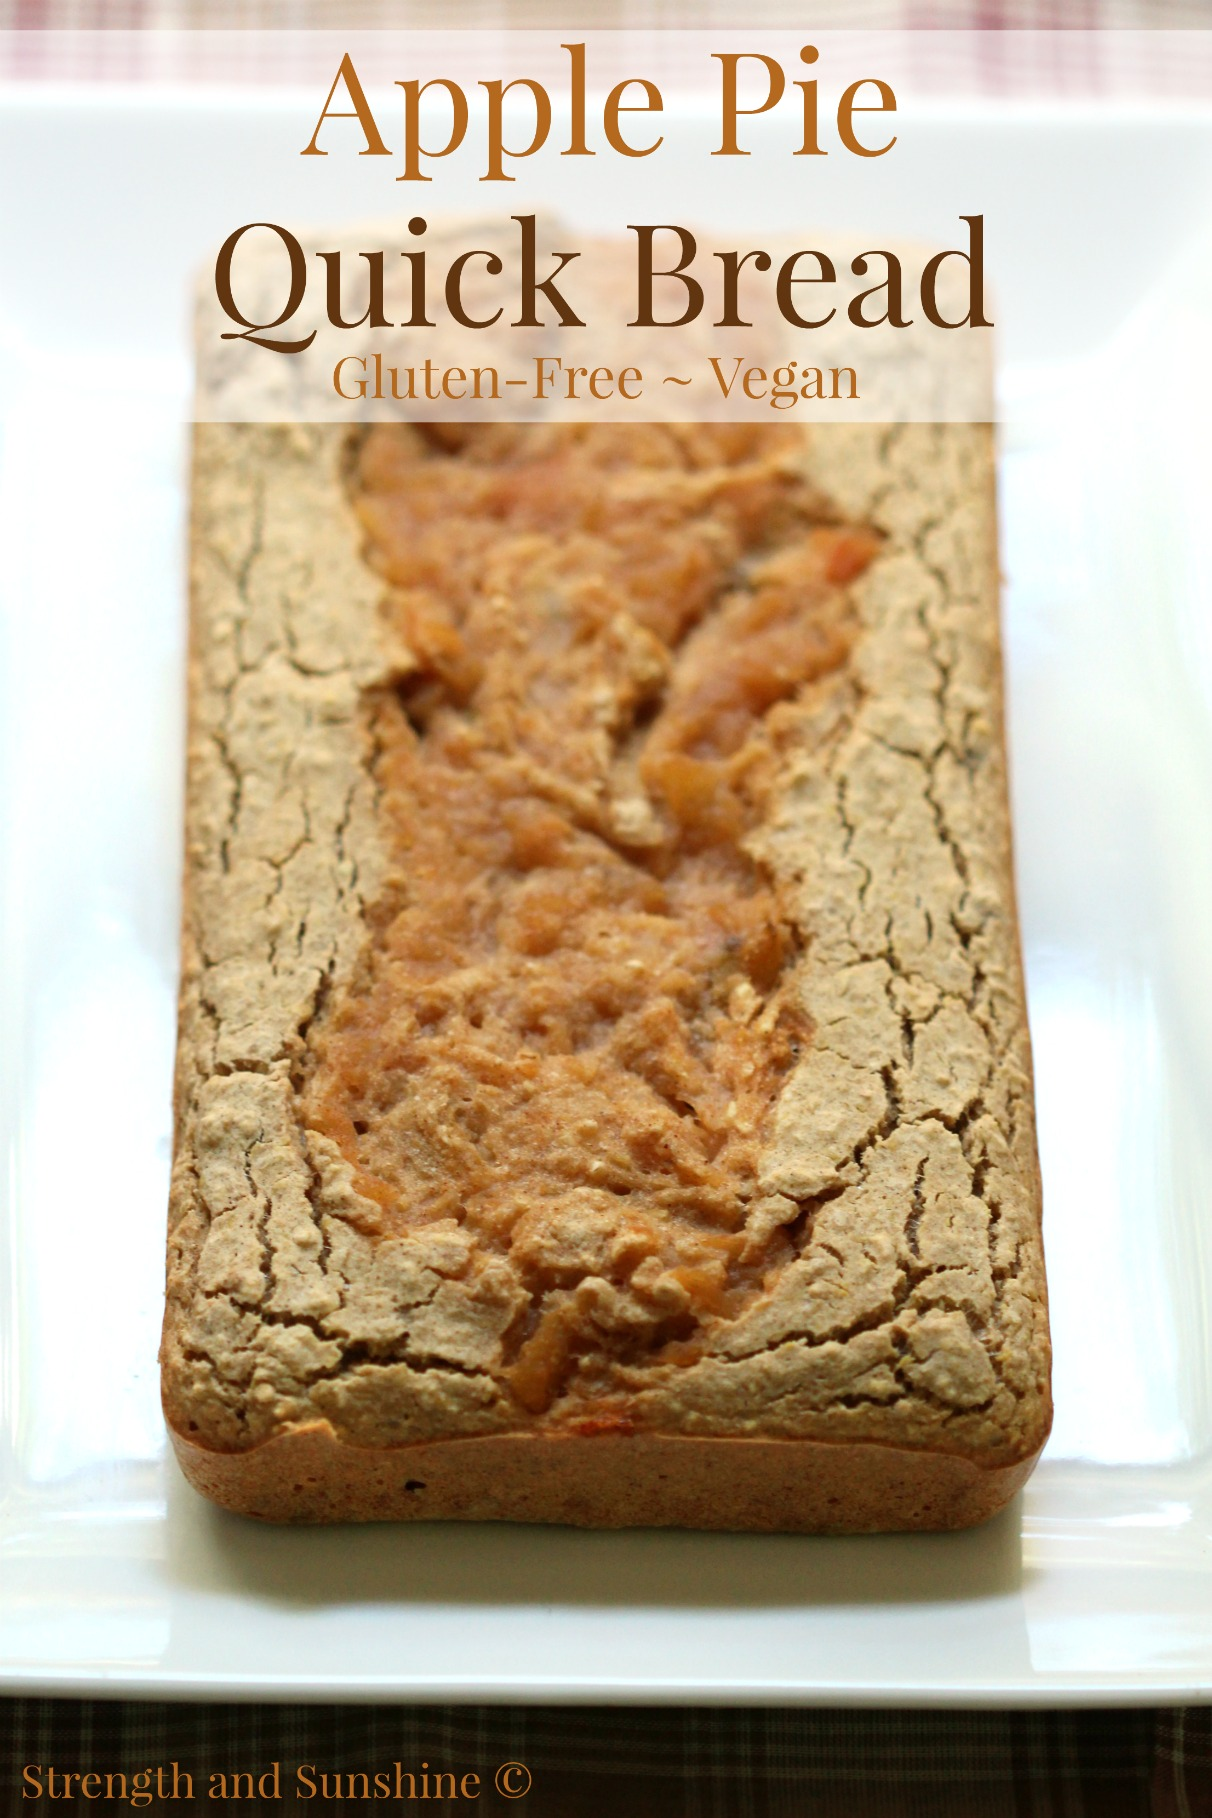 Apple Pie Quick Bread | Strength and Sunshine @RebeccaGF666 The sweet flavors of apple pie transformed into a healthy gluten-free vegan quick bread! This apple pie quick bread recipe is the perfect autumn breakfast, snack, or even dessert!